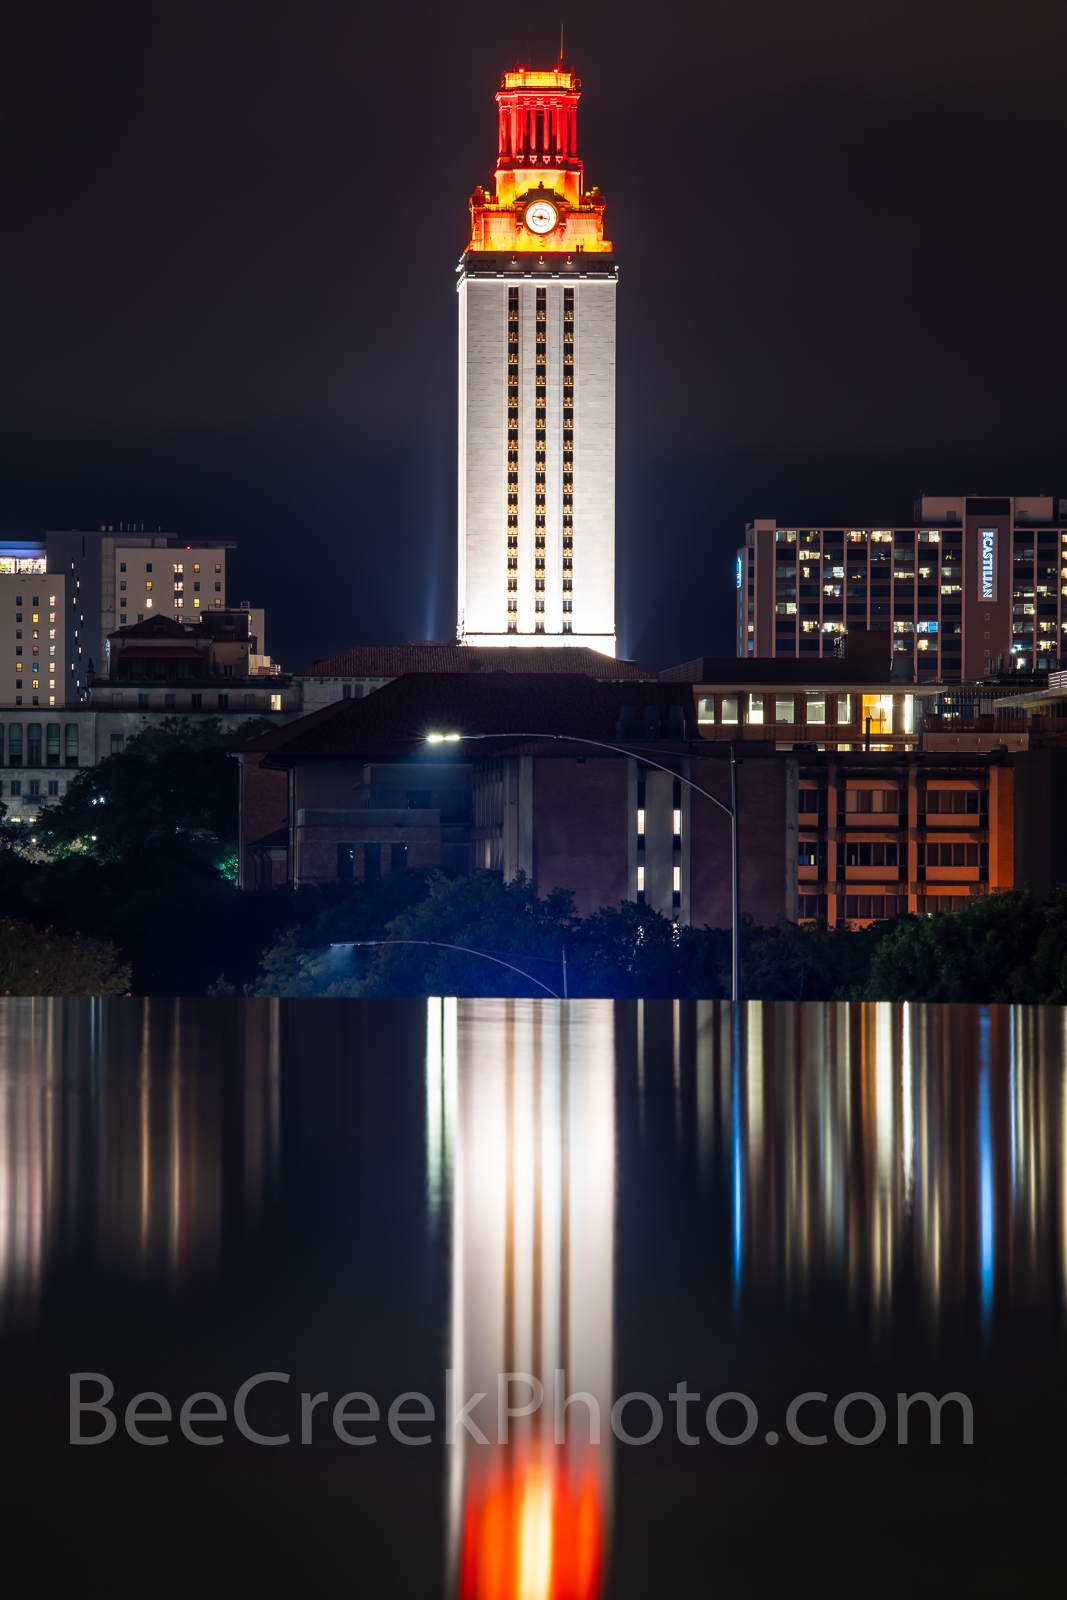 Austin, UT, University of Texas, tower, campus. building, orange, reflections, burnt, wins, game, stadium, UT tower, stadium, landmark, vertical, tall, images of austin, images of texas,, photo